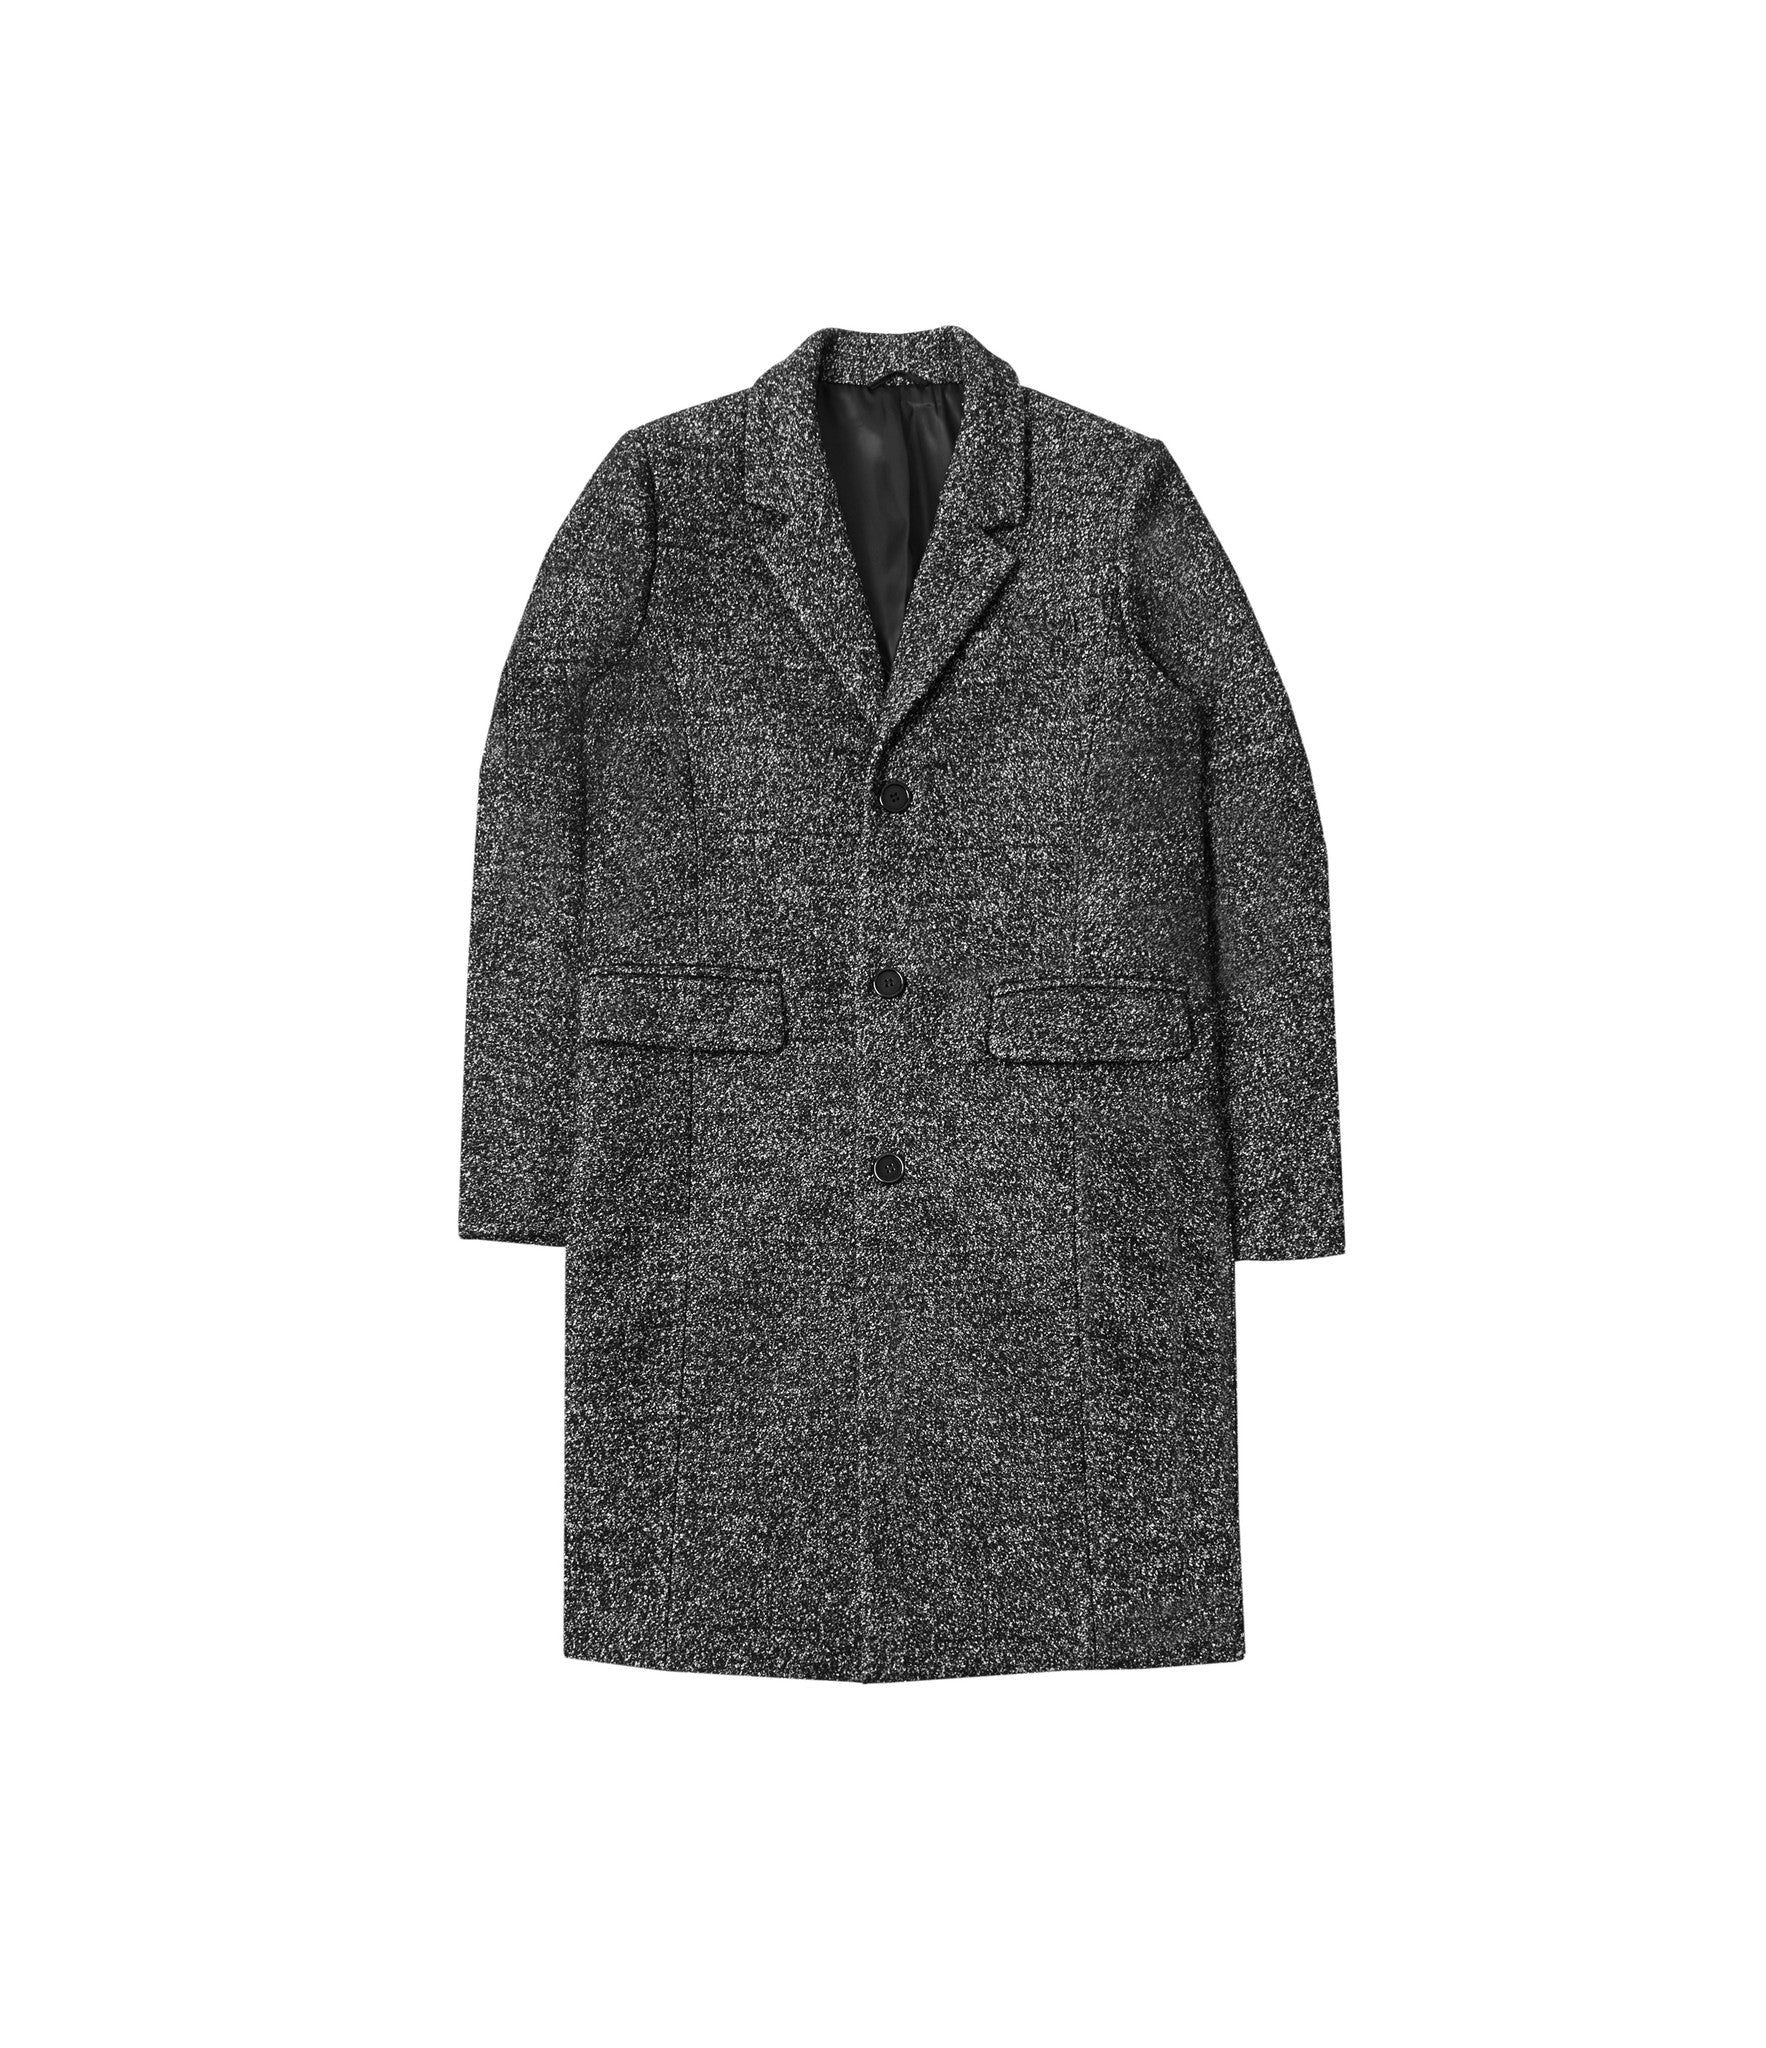 JK212 Mélange Wool Blend Overcoat - Black - underated london - underatedco - 2